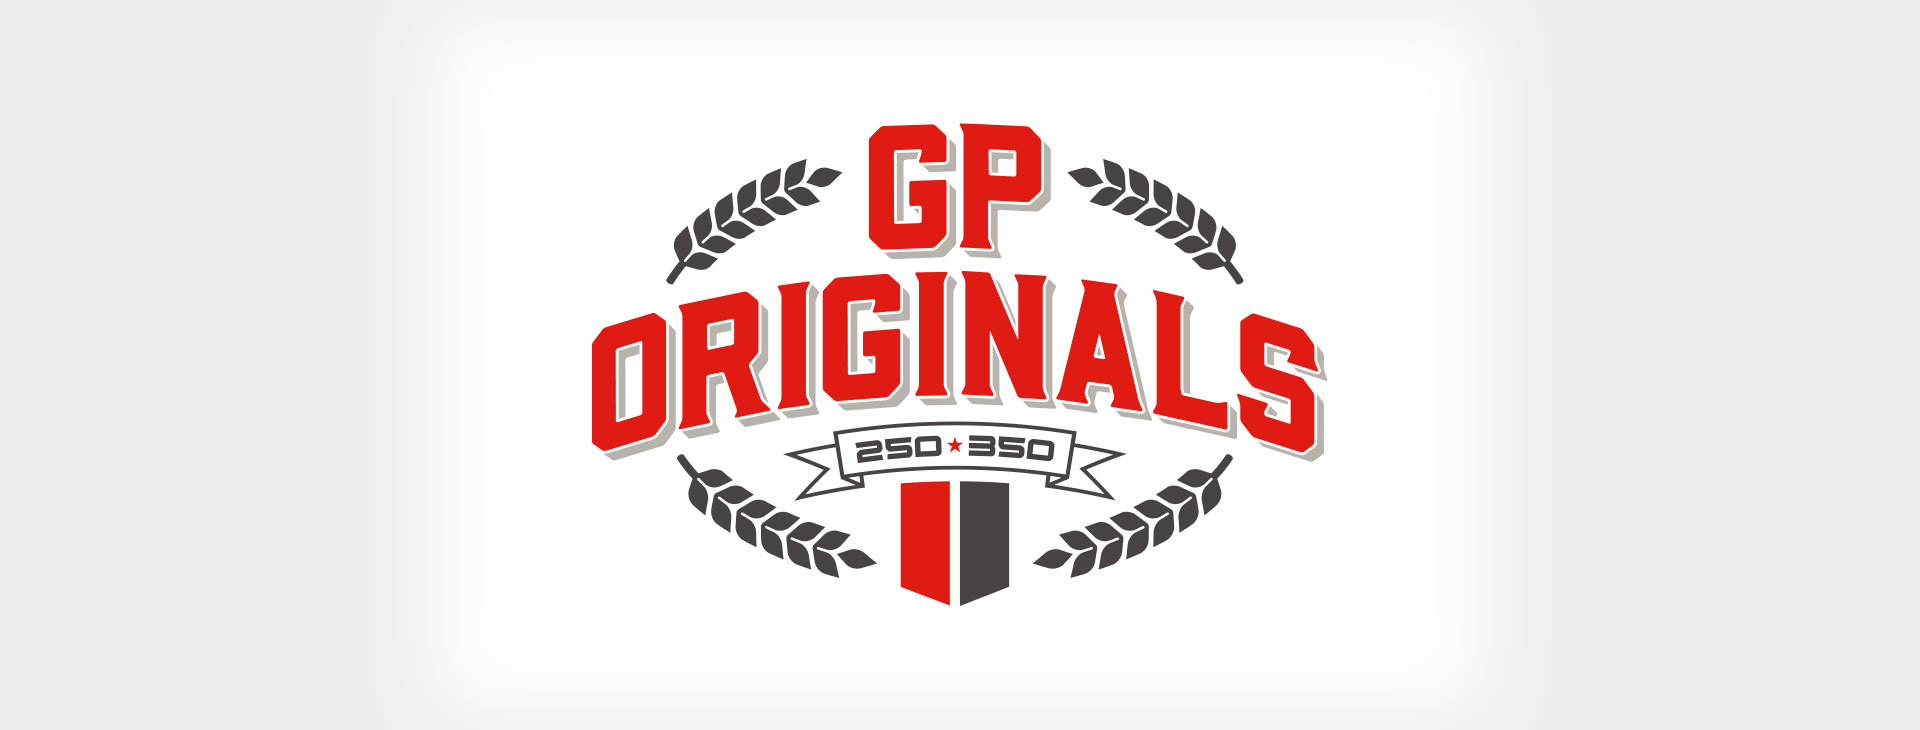 Motorcycle racing logo design